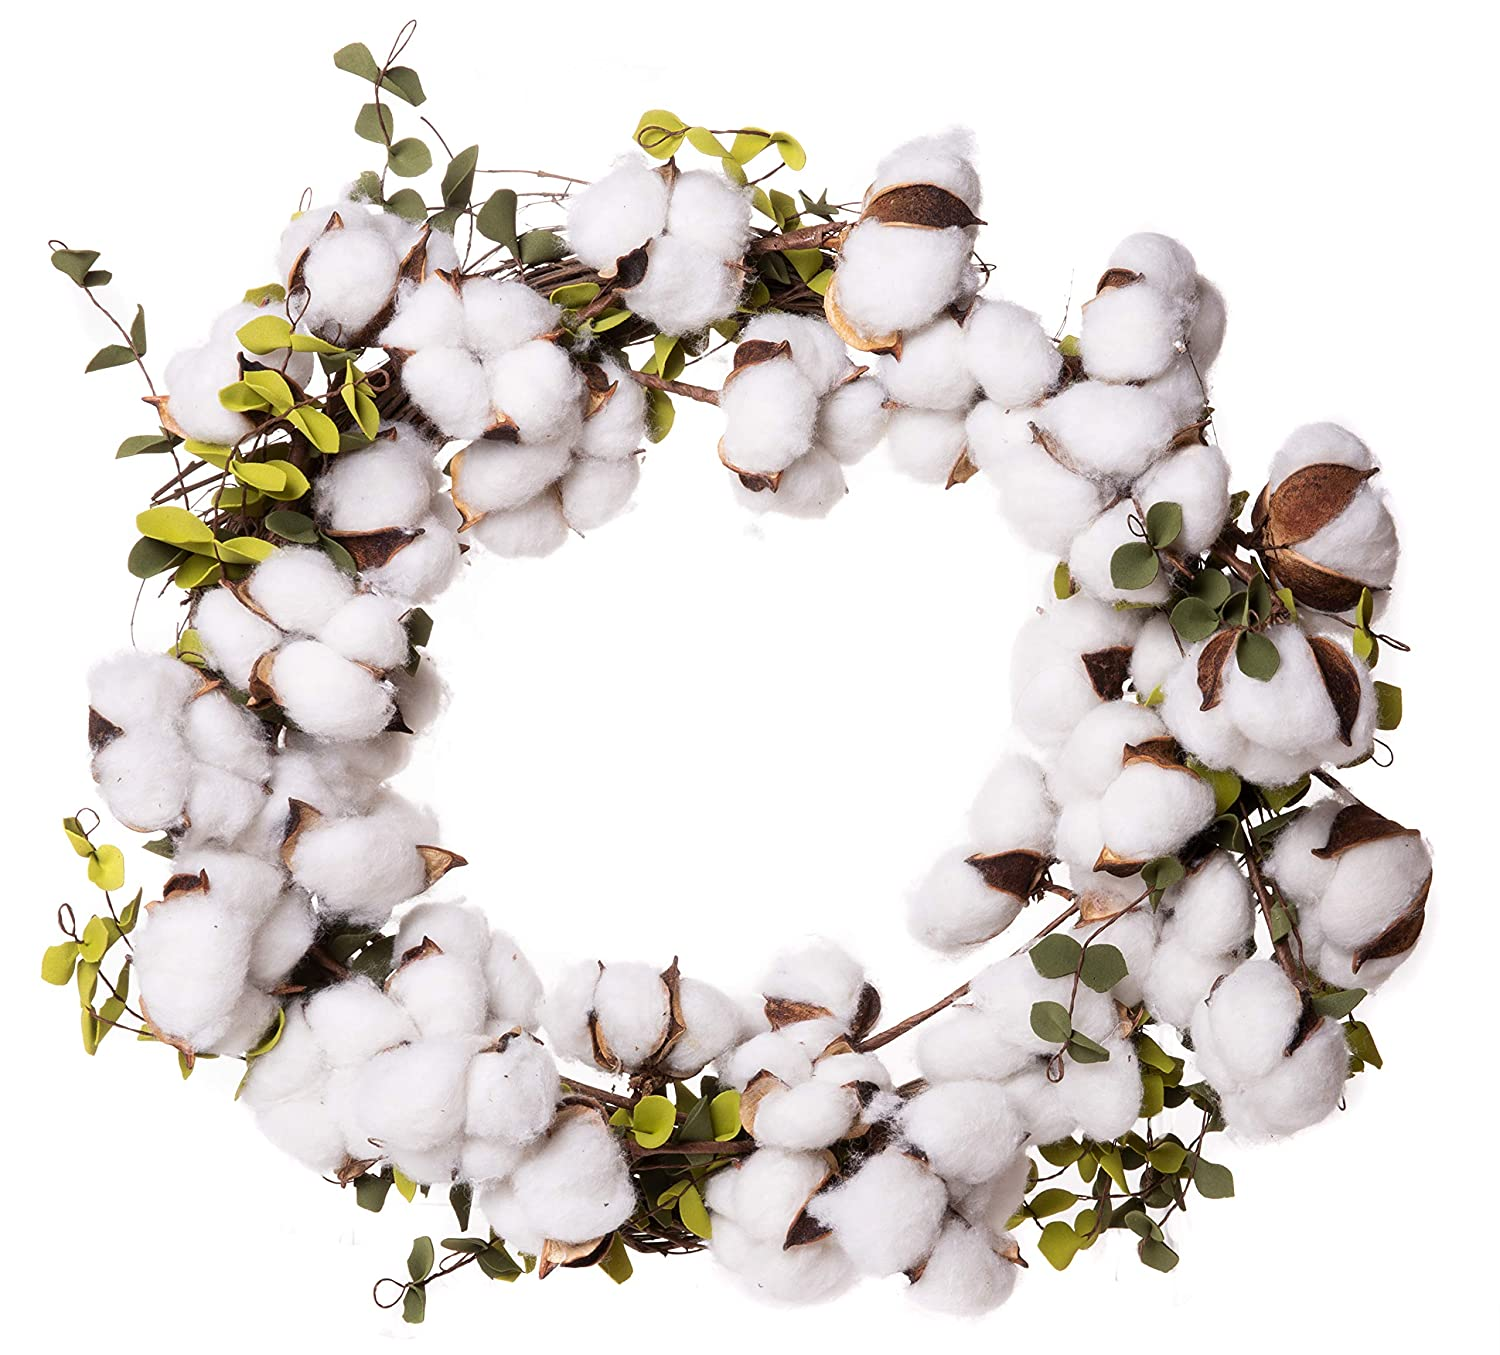 Red Co. Farmhouse Full White Cotton Wreath with Eucalyptus Leaves - Home Décor 22